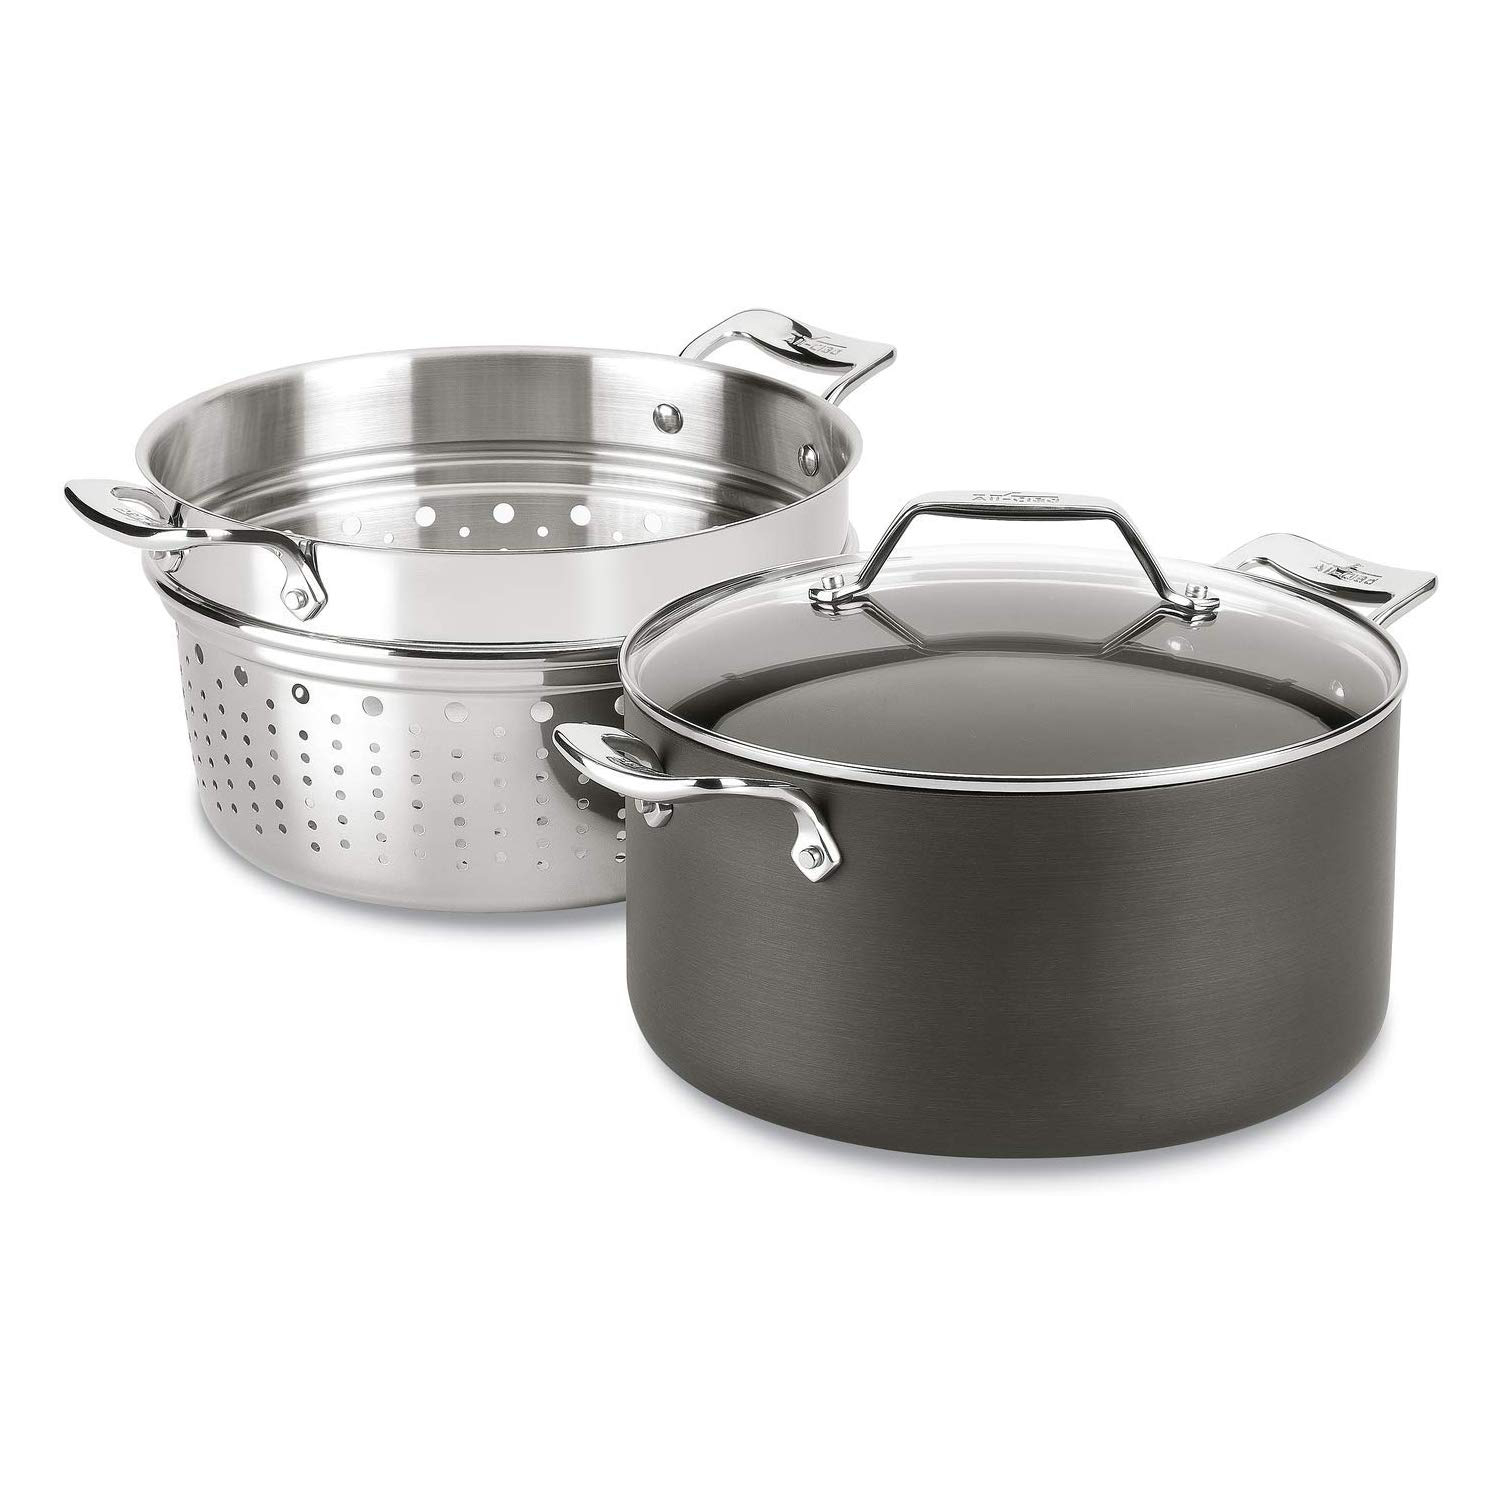 All-Clad Essentials Nonstick 7 qt. Multi-Pot w/Insert